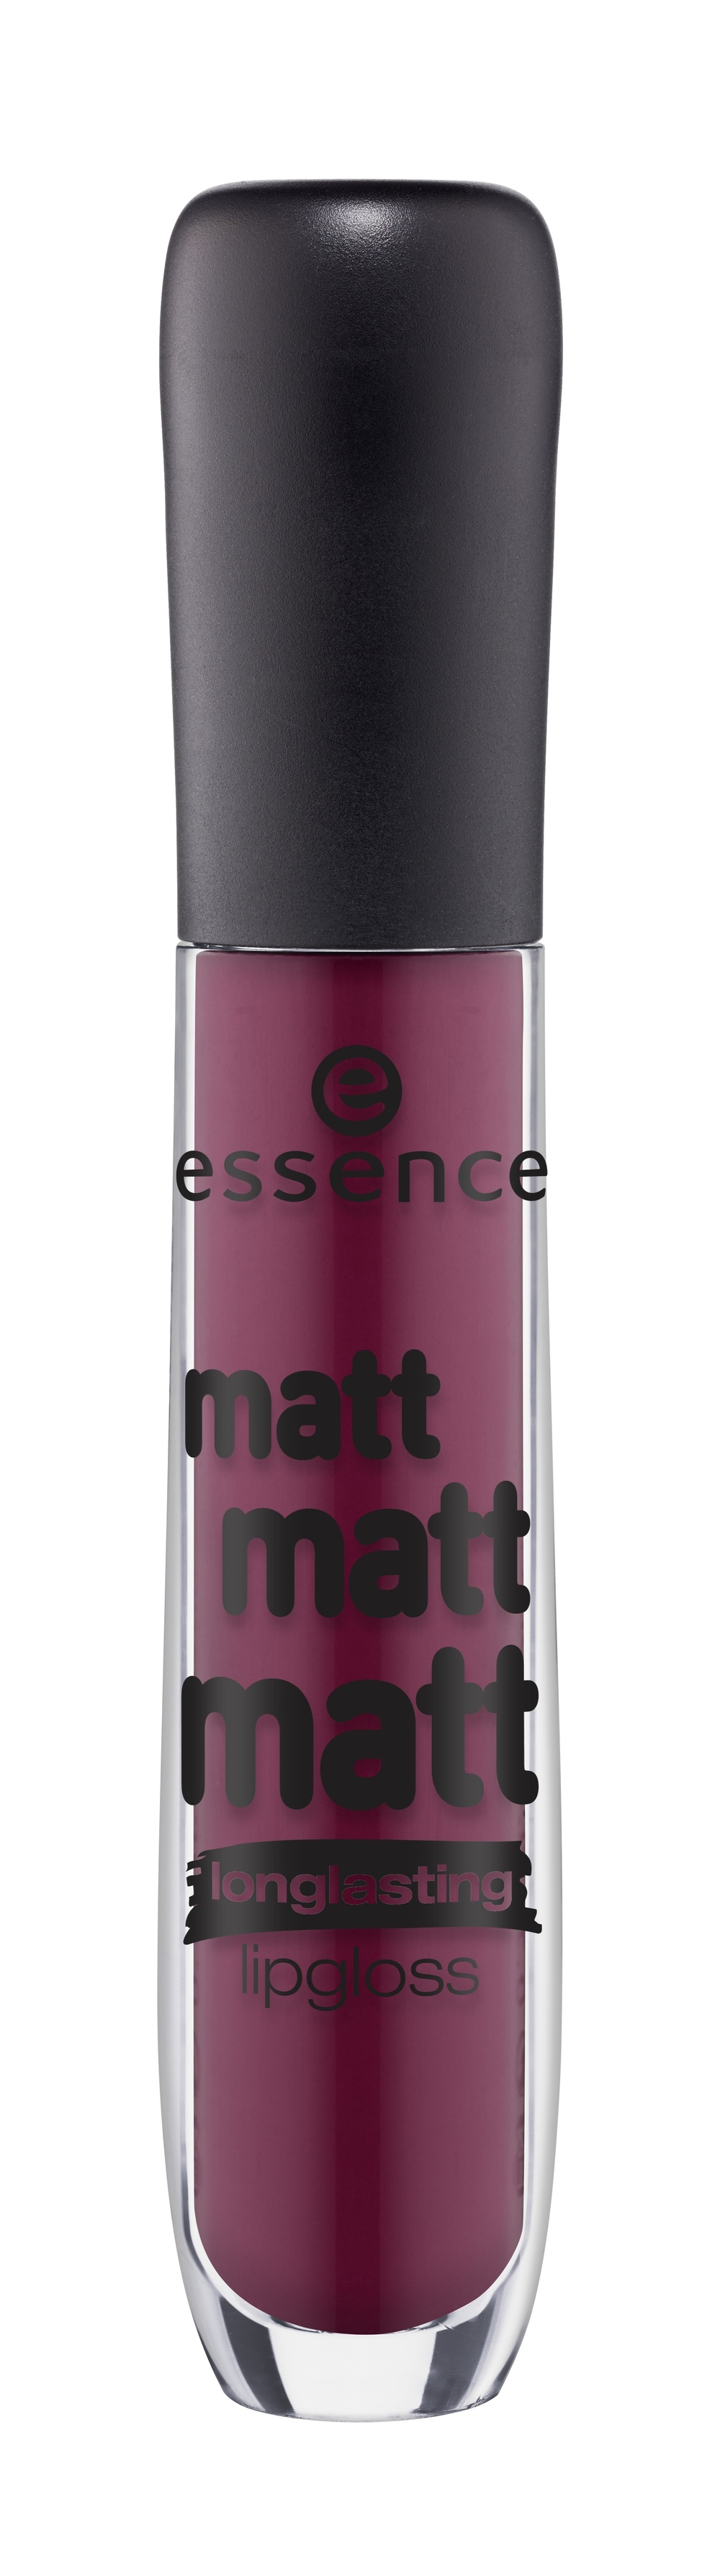 Фото - Essence Блеск для Губ Matt Matt Matt тон 11 Винный matt braun texas empire